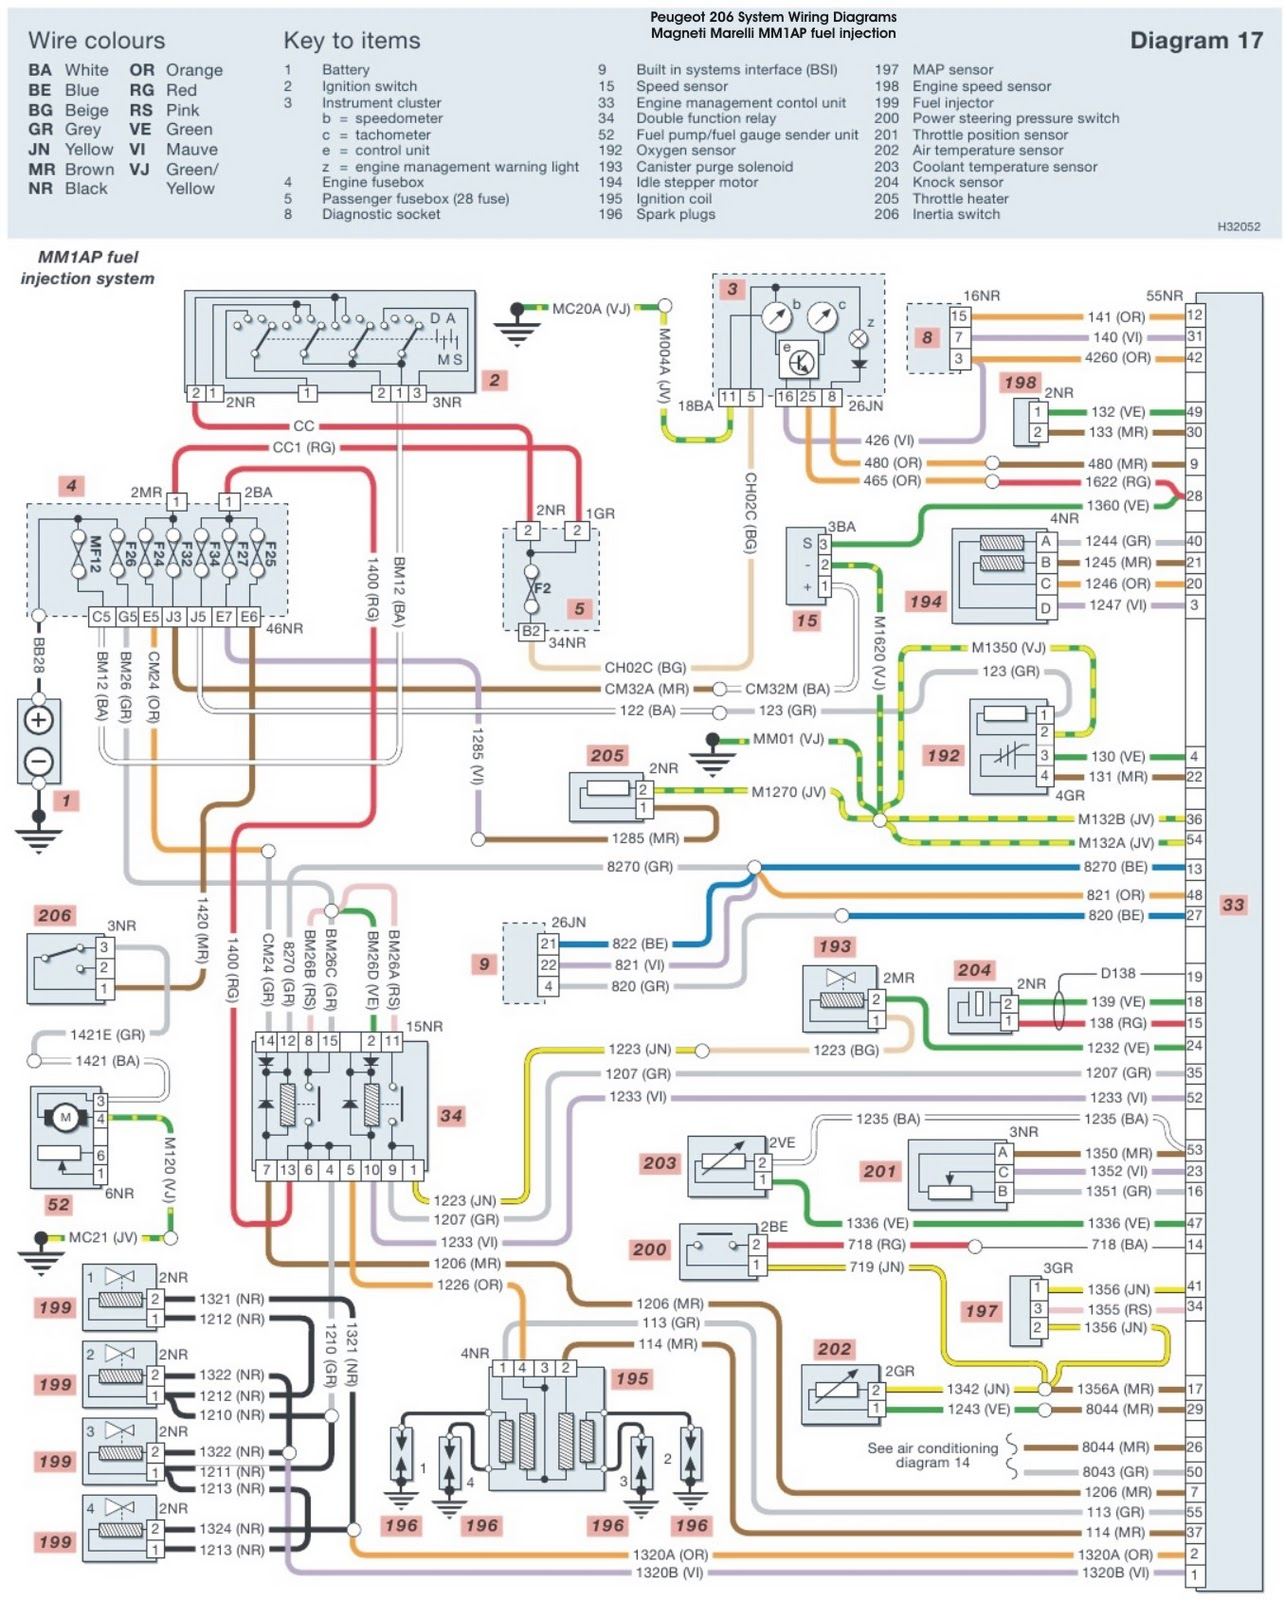 Stupendous Peugeot Engine Wiring Diagram Diagram Data Schema Wiring Digital Resources Anistprontobusorg